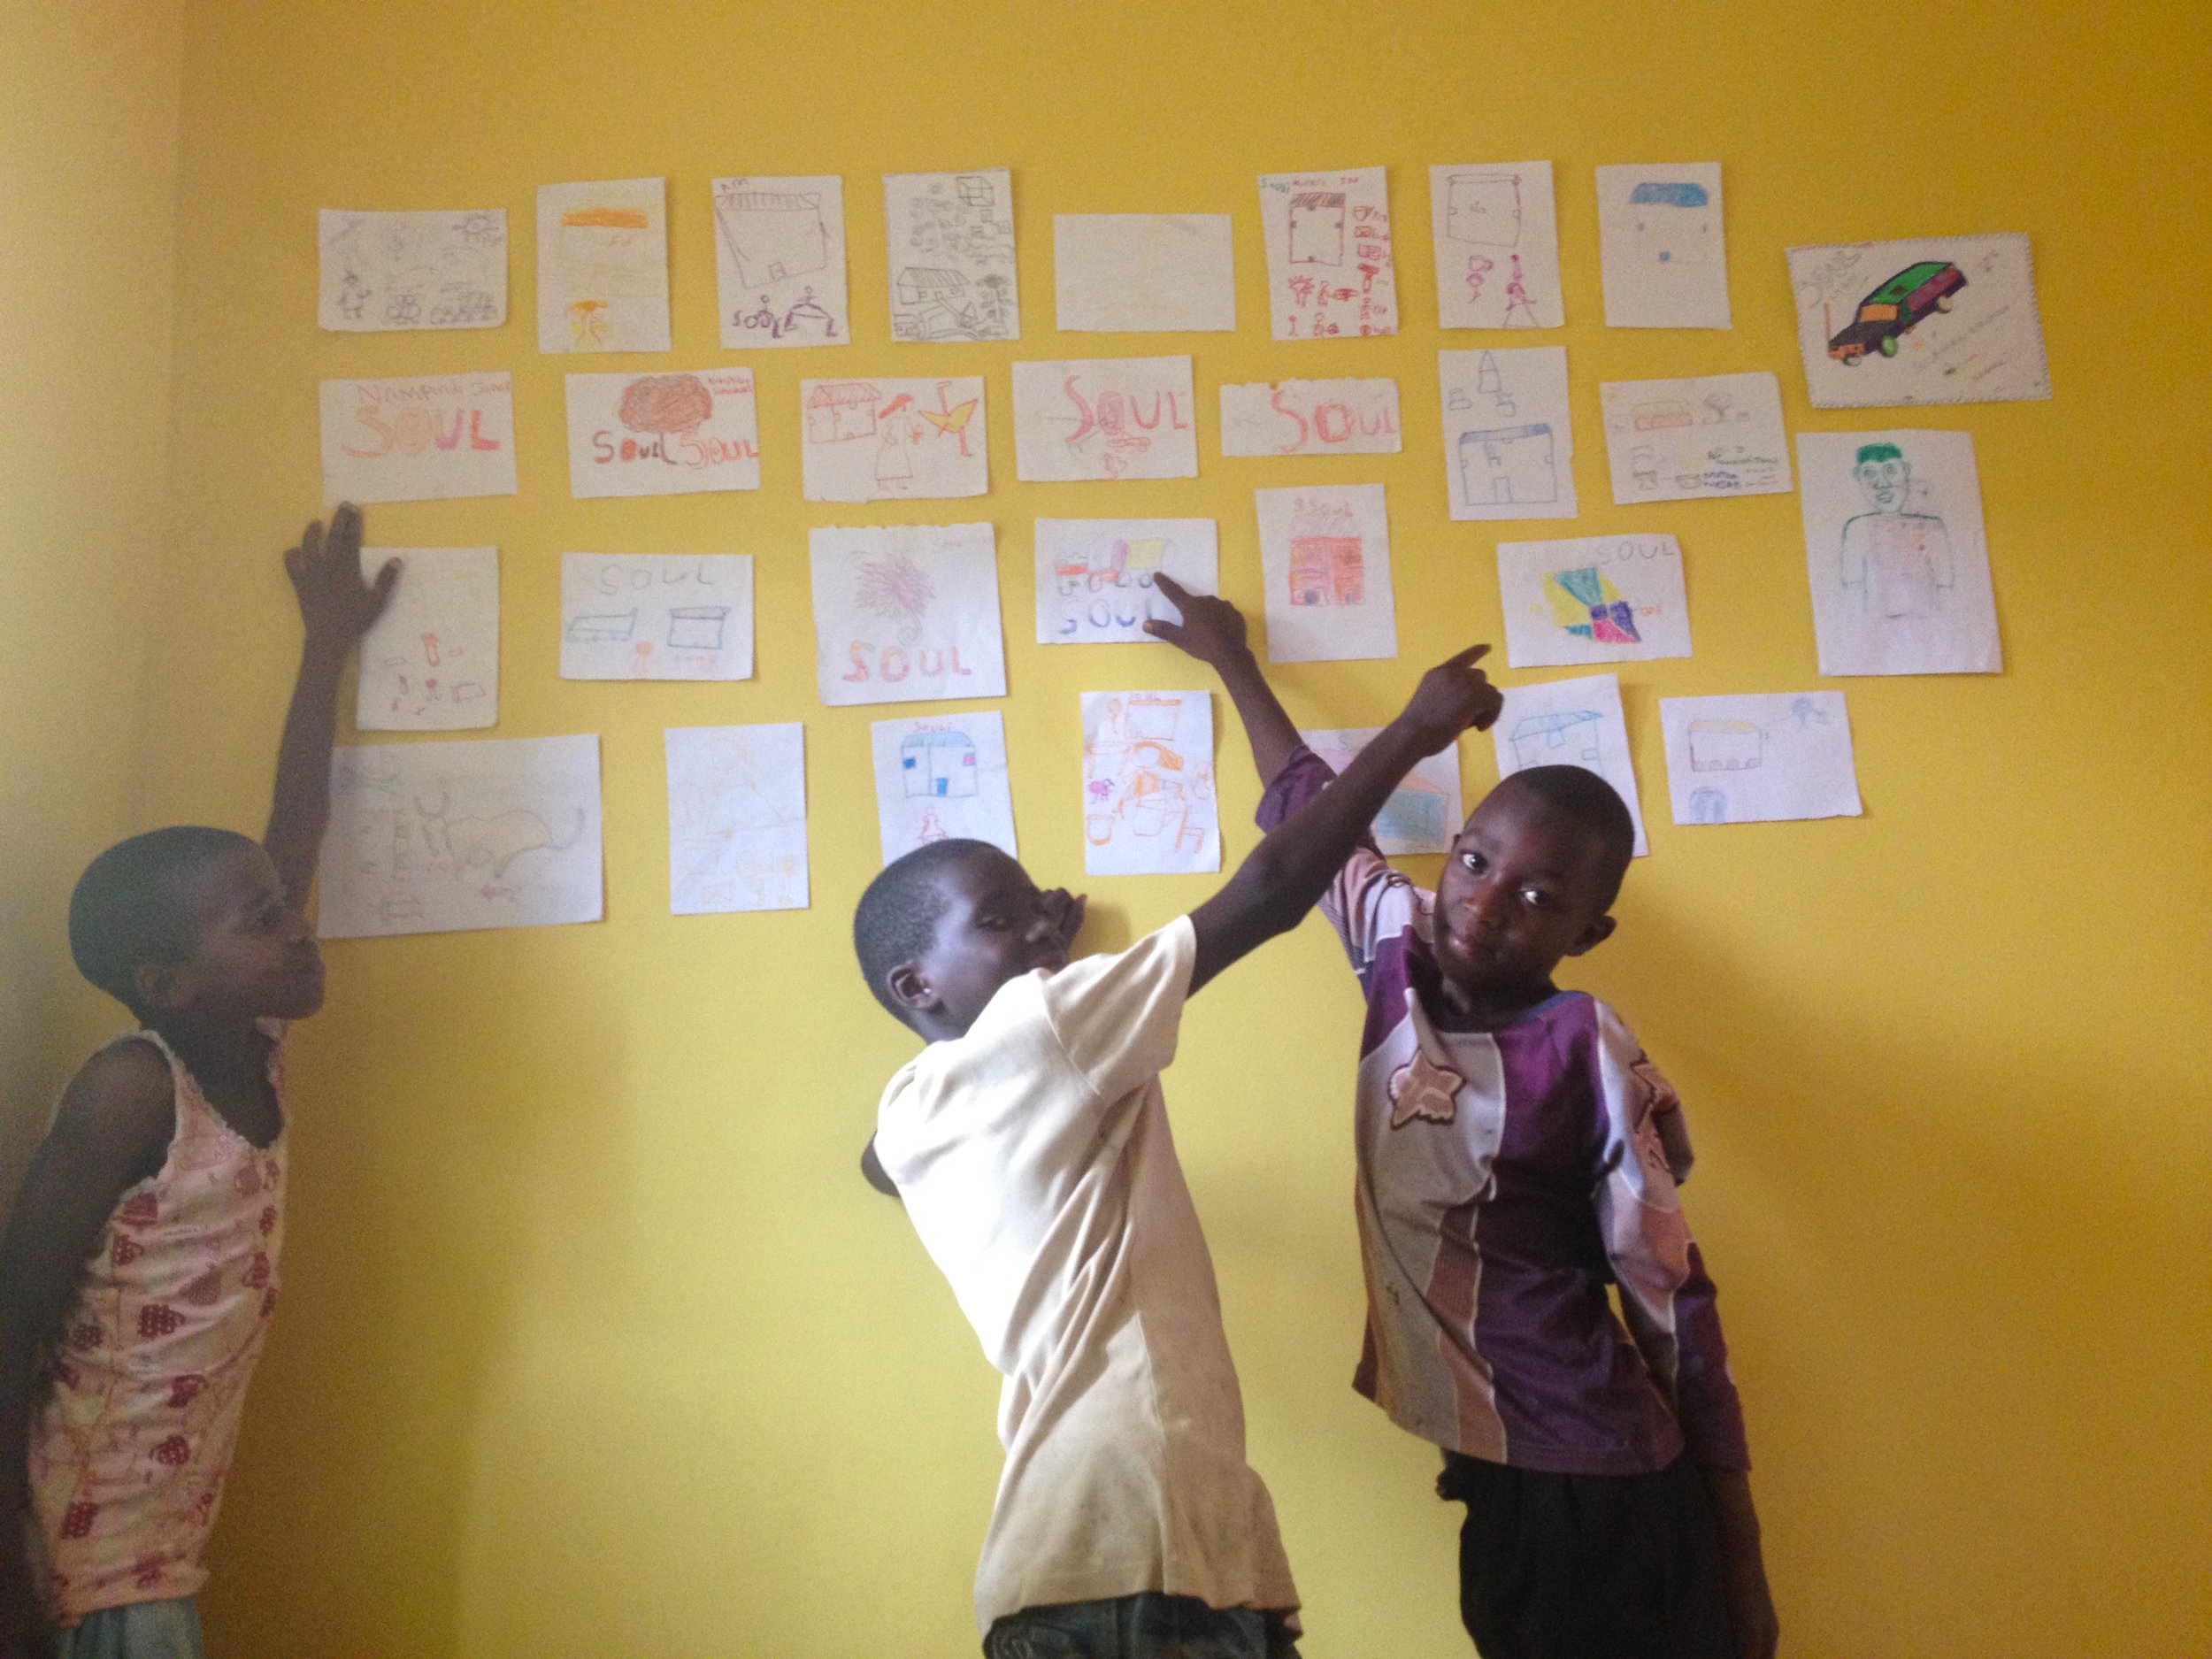 S.O.U.L. students enjoying a visit to the Iganga Community Center during their holidays